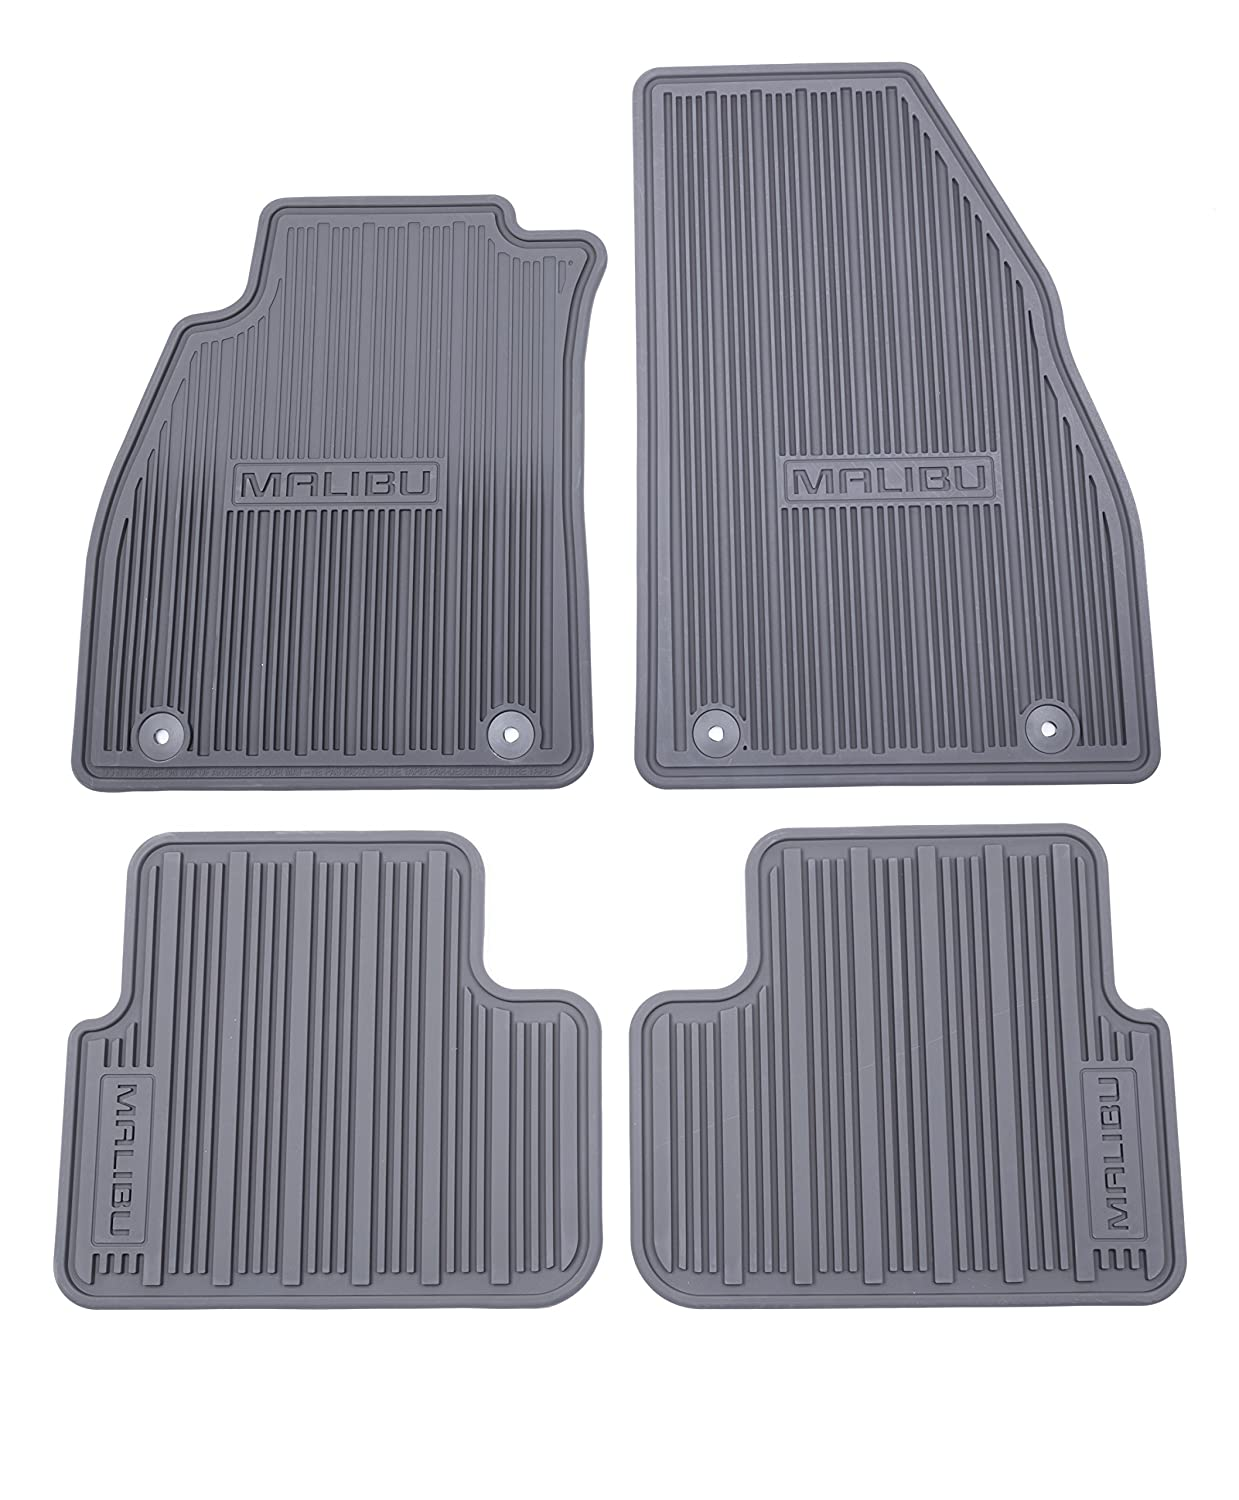 GM Accessories 22906996 Front and Rear All-Weather Floor Mats in Black with Deep Rib